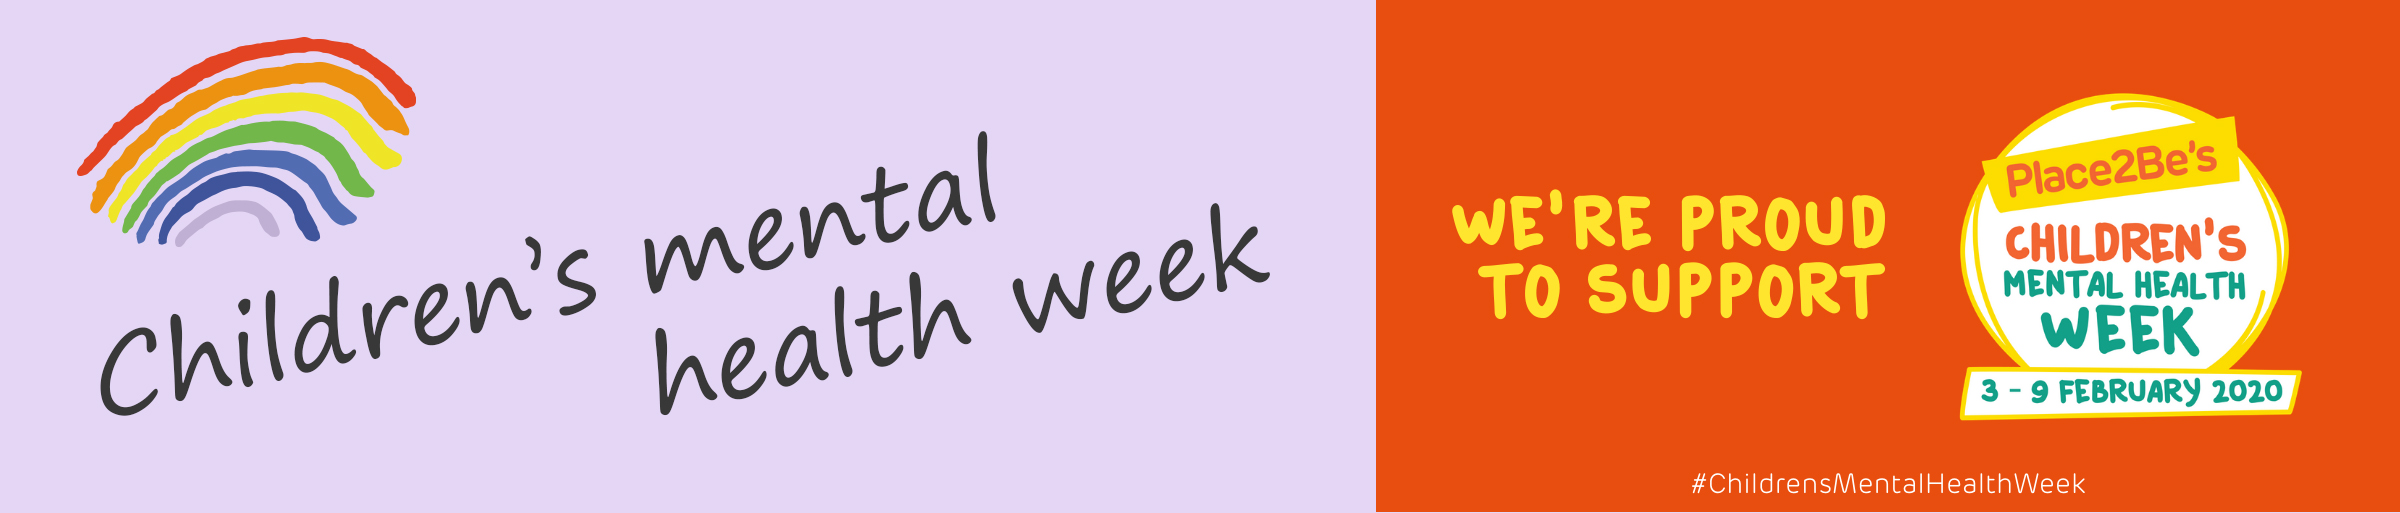 Children's Mental Health Week Banner